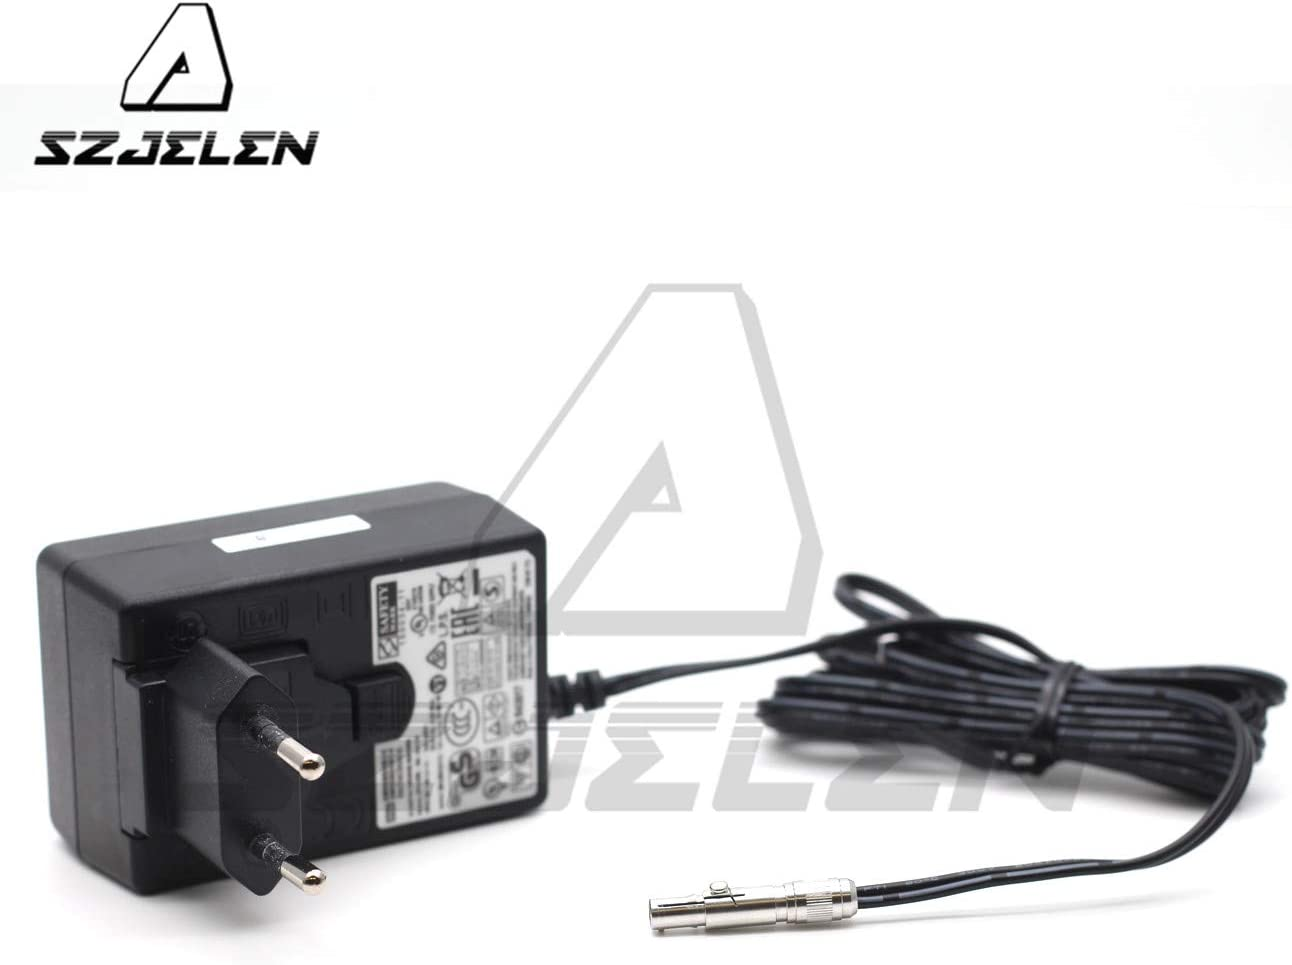 SZJELEN Neutrik 3 pin to Universal AC Power Adapter Cable with US UK EU Plugs for Odyssey 7Q Monitor Power Cable